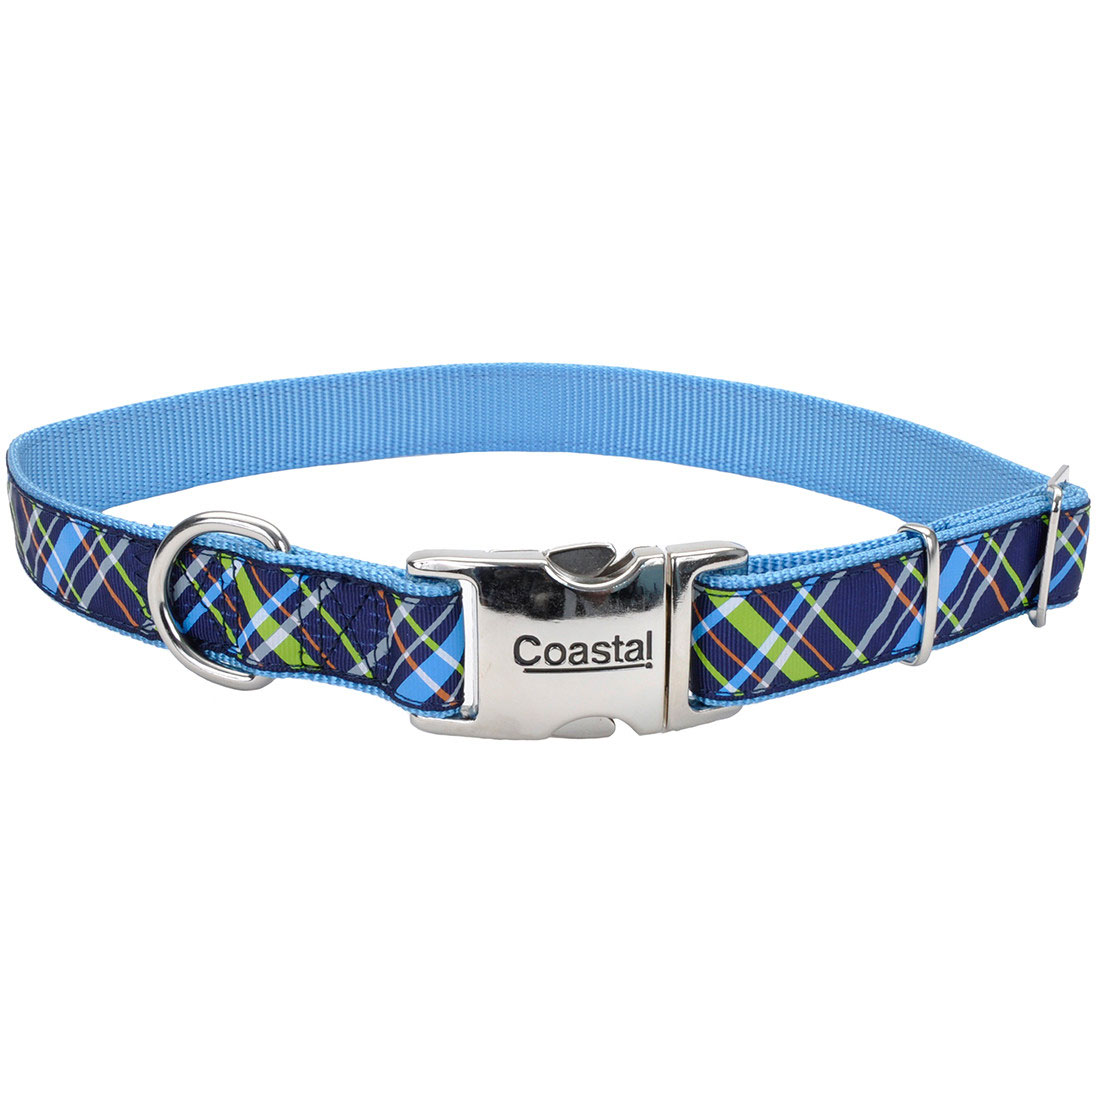 Ribbon Adjustable Collar with Metal Buckle for Dogs, Navy Blue Plaid Image